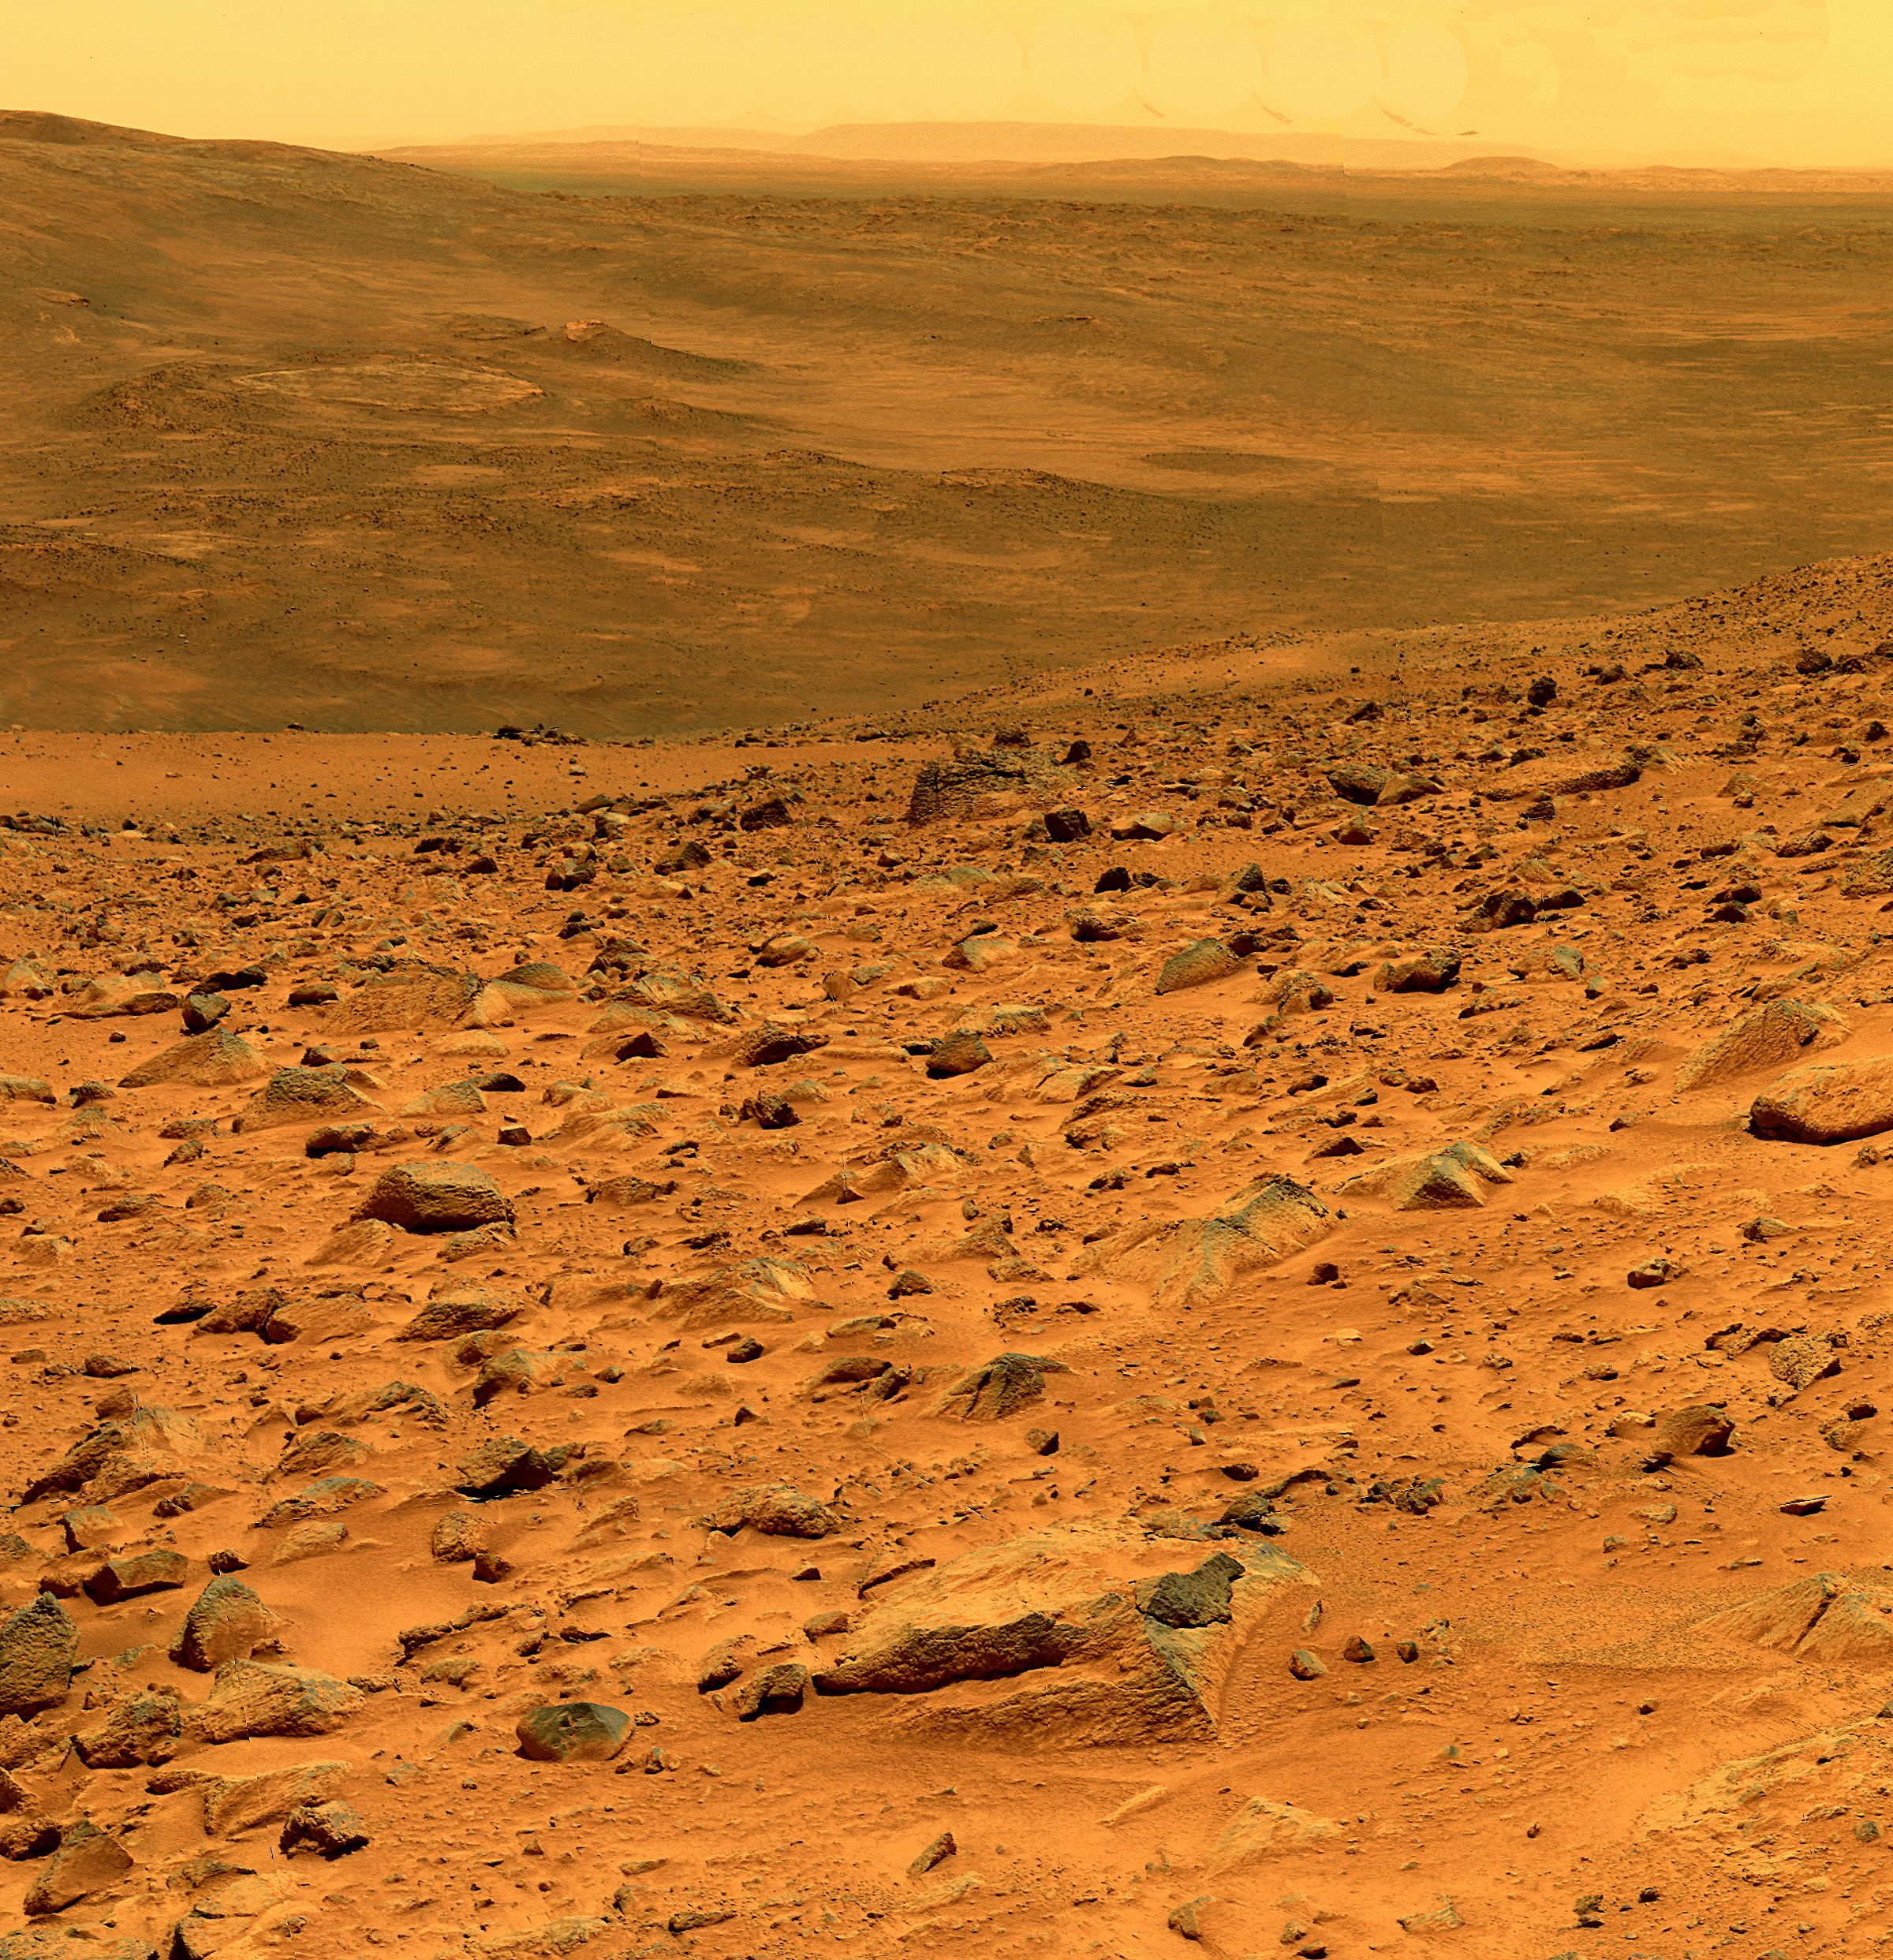 mars rover real pictures - photo #7